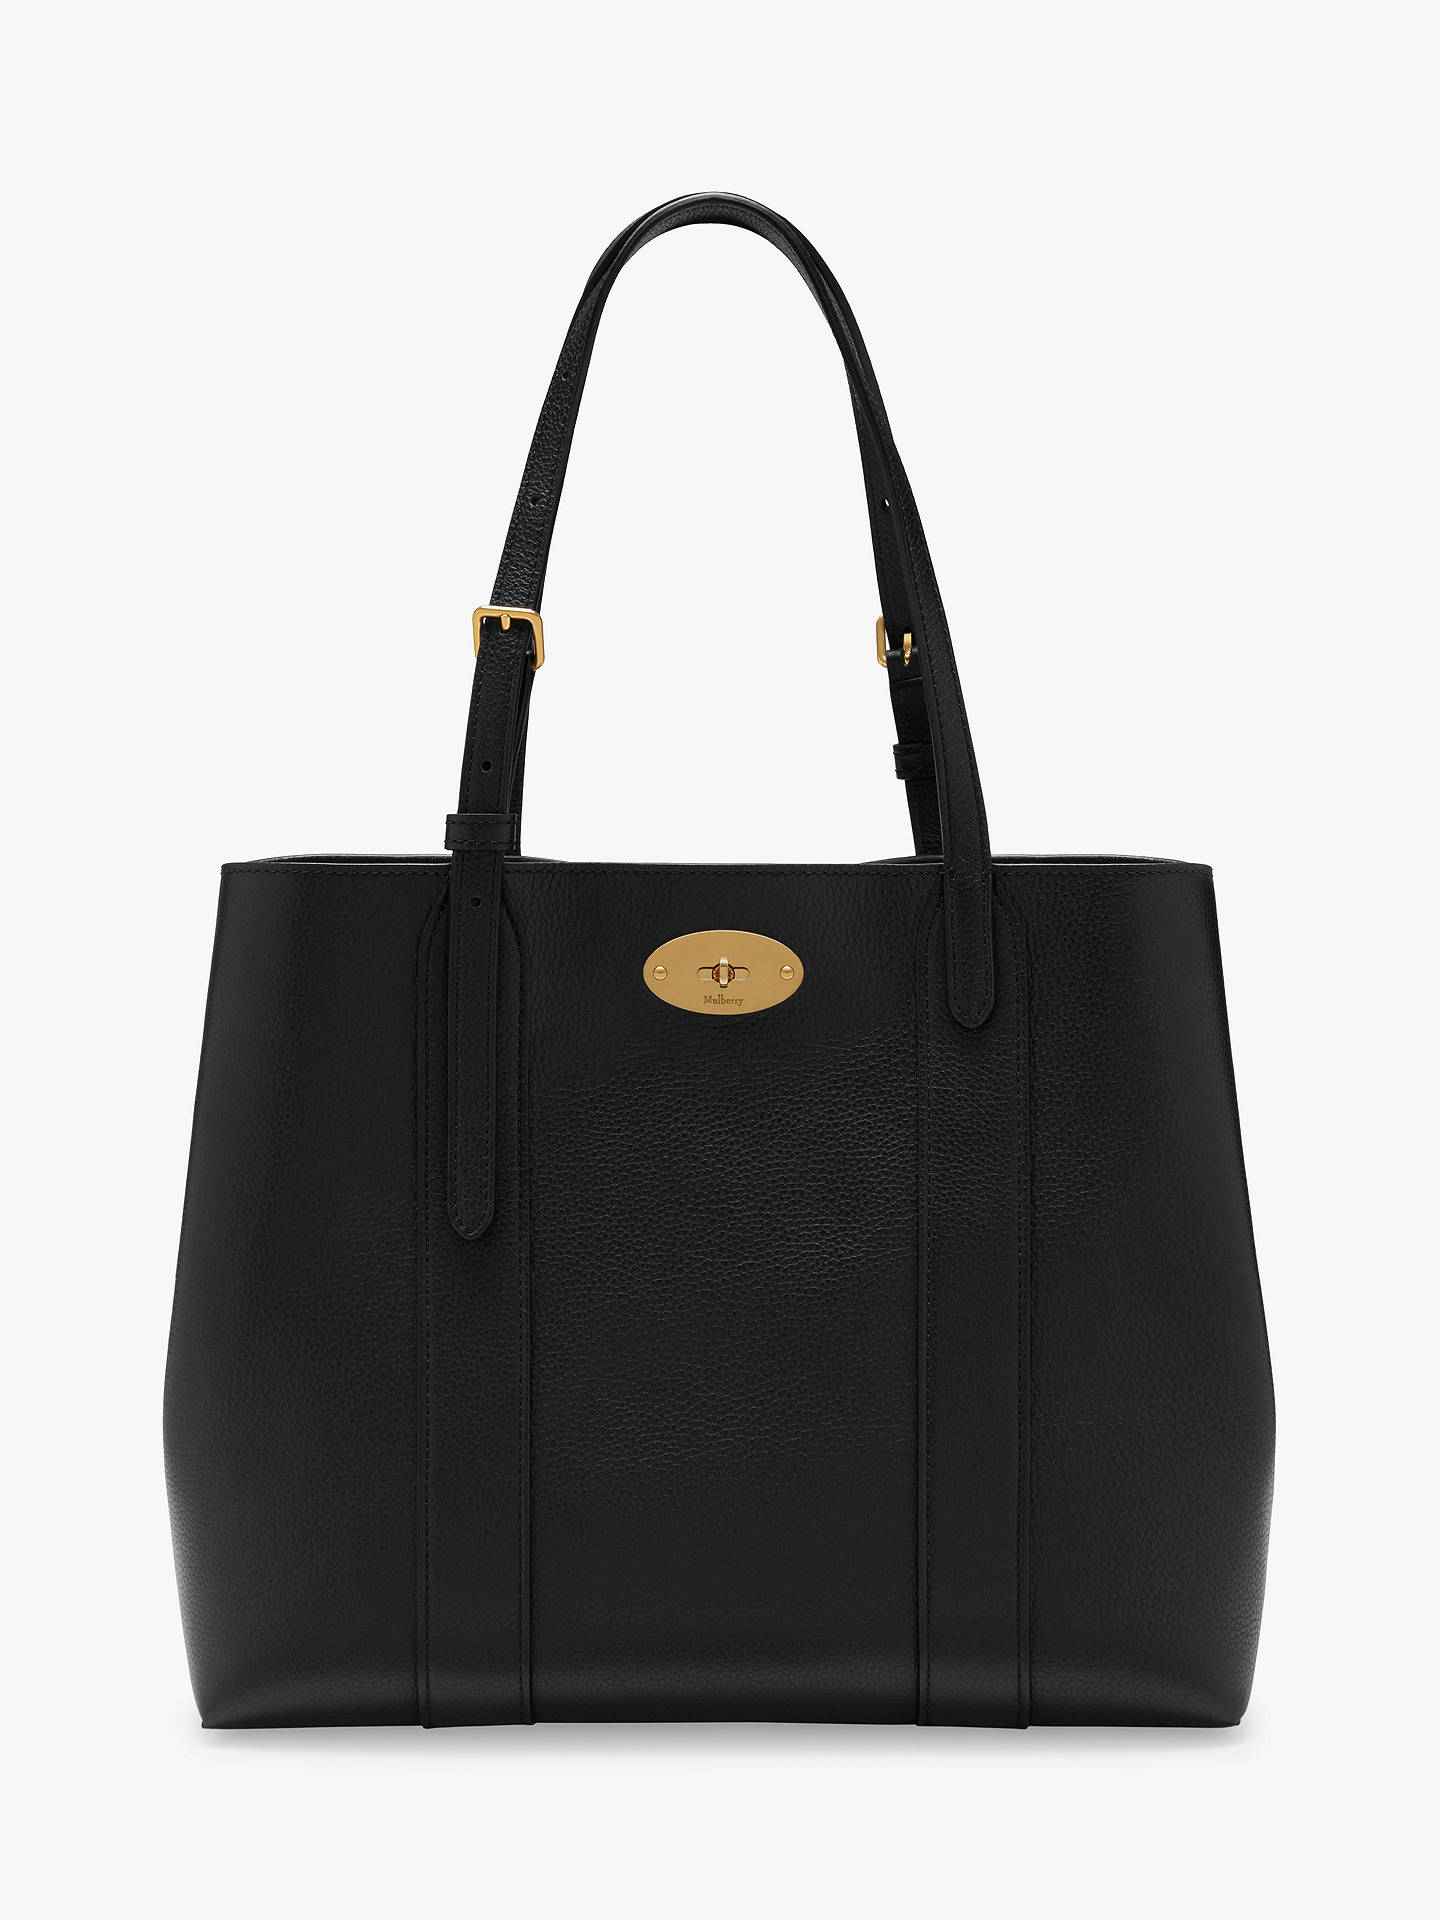 8ccc8f517 Buy Mulberry Small Bayswater Classic Grain Leather Tote Bag, Black Online  at johnlewis.com ...